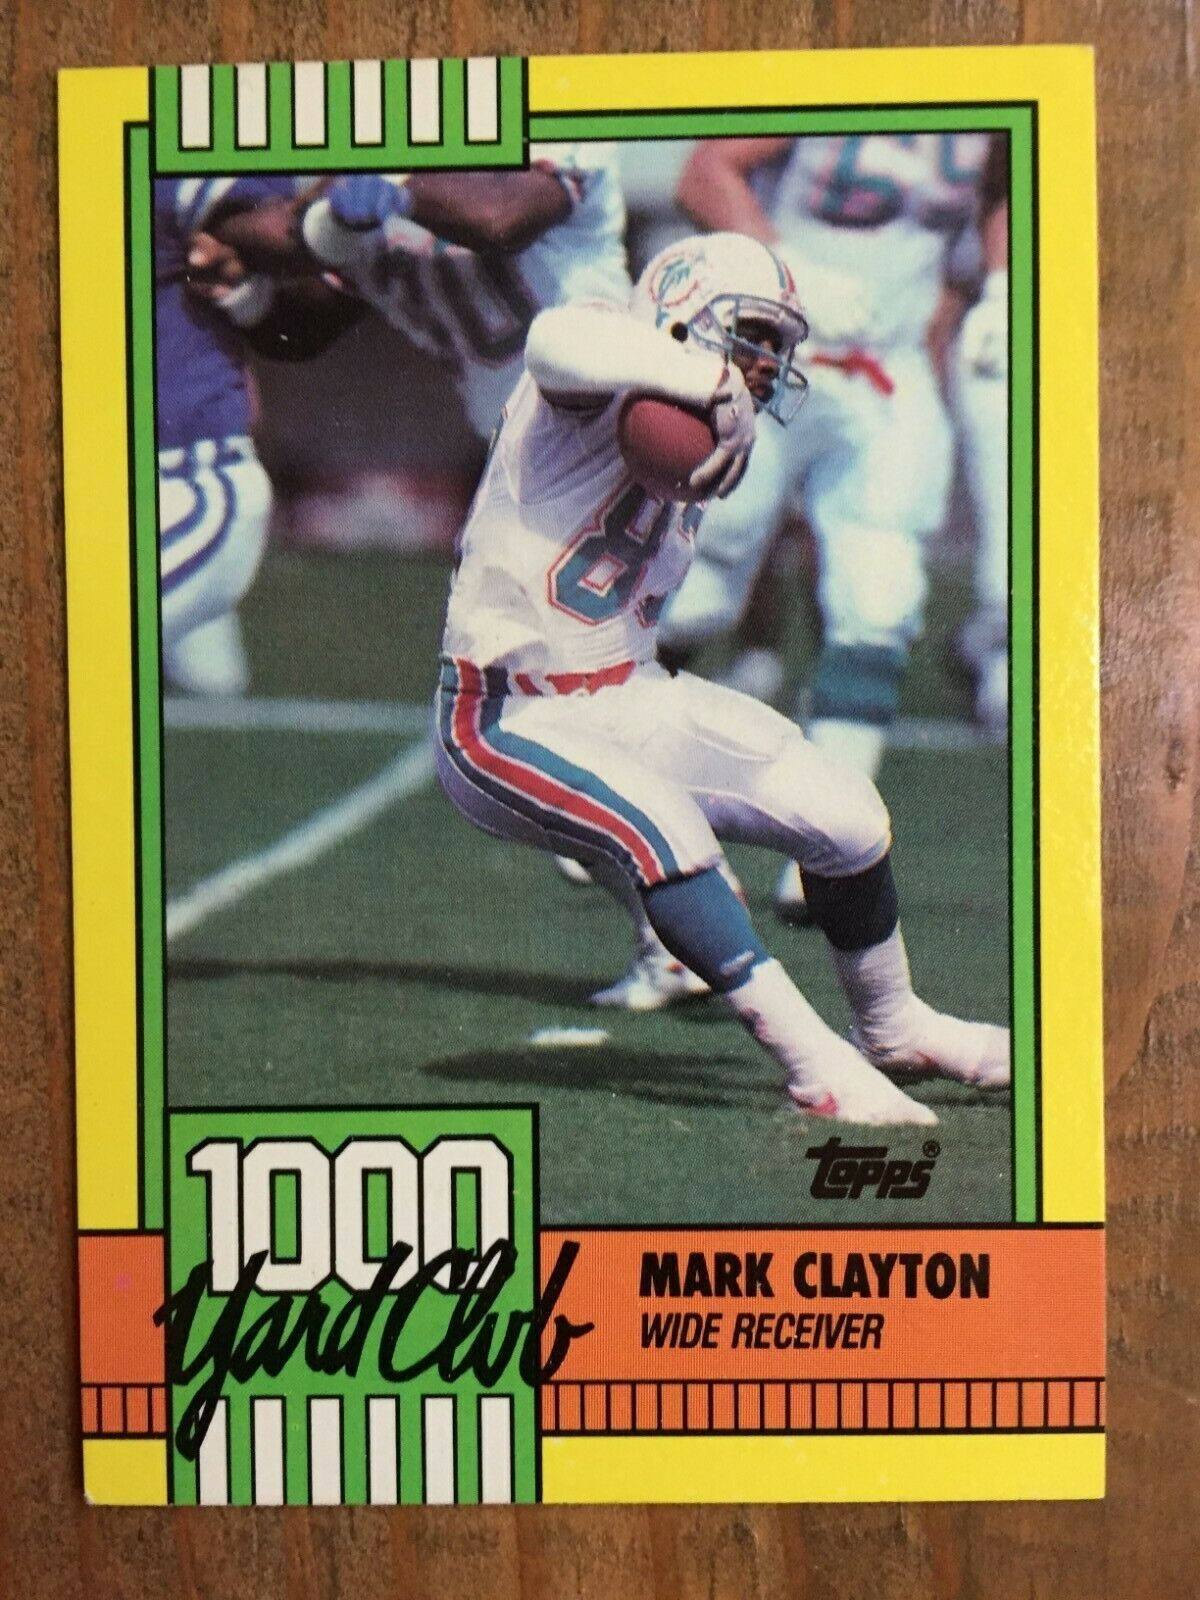 1990 Topps 30 Mark Clayton 1 000 Yard Club Miami Dolphins Nm Great Card In 2020 Football Cards Mark Clayton Miami Dolphins